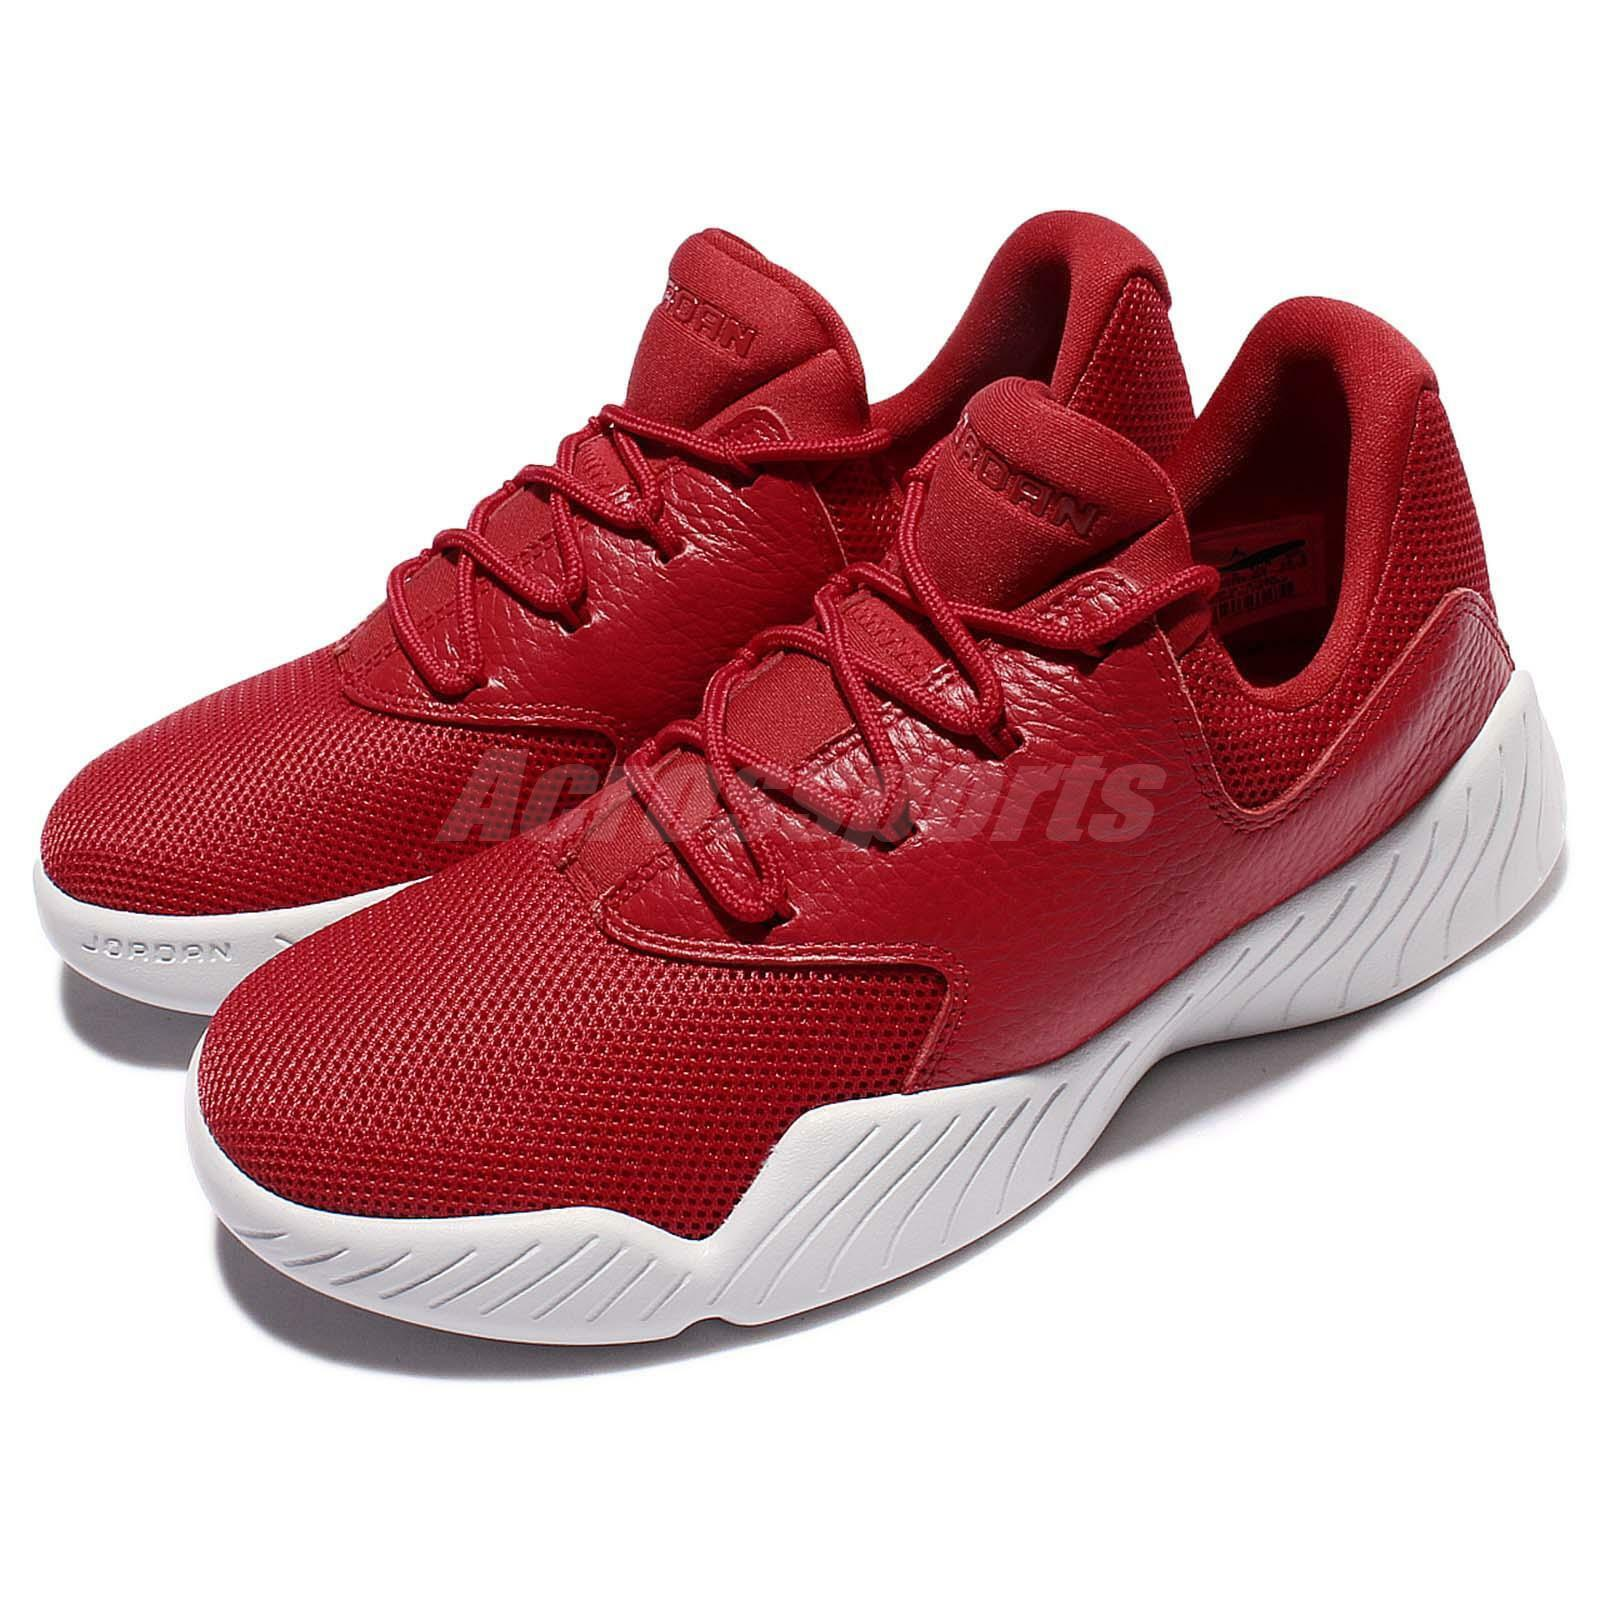 Nike Jordan J23 Low Rouge Blanc Men Casual Lifestyle Chaussures Baskets 905288-601